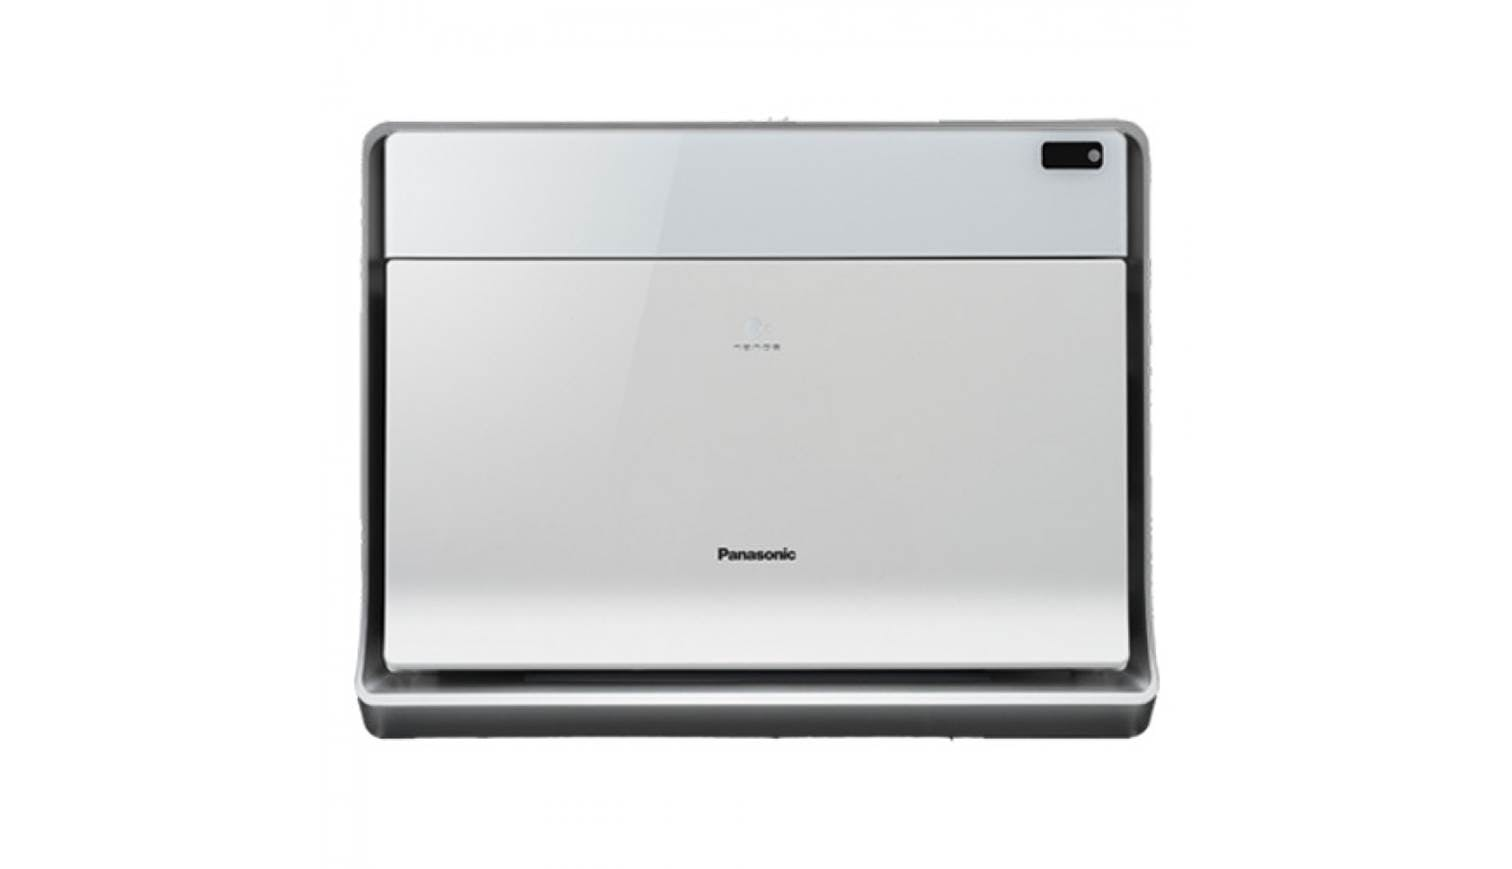 Panasonic Air Purifiers – What Makes Them So Special